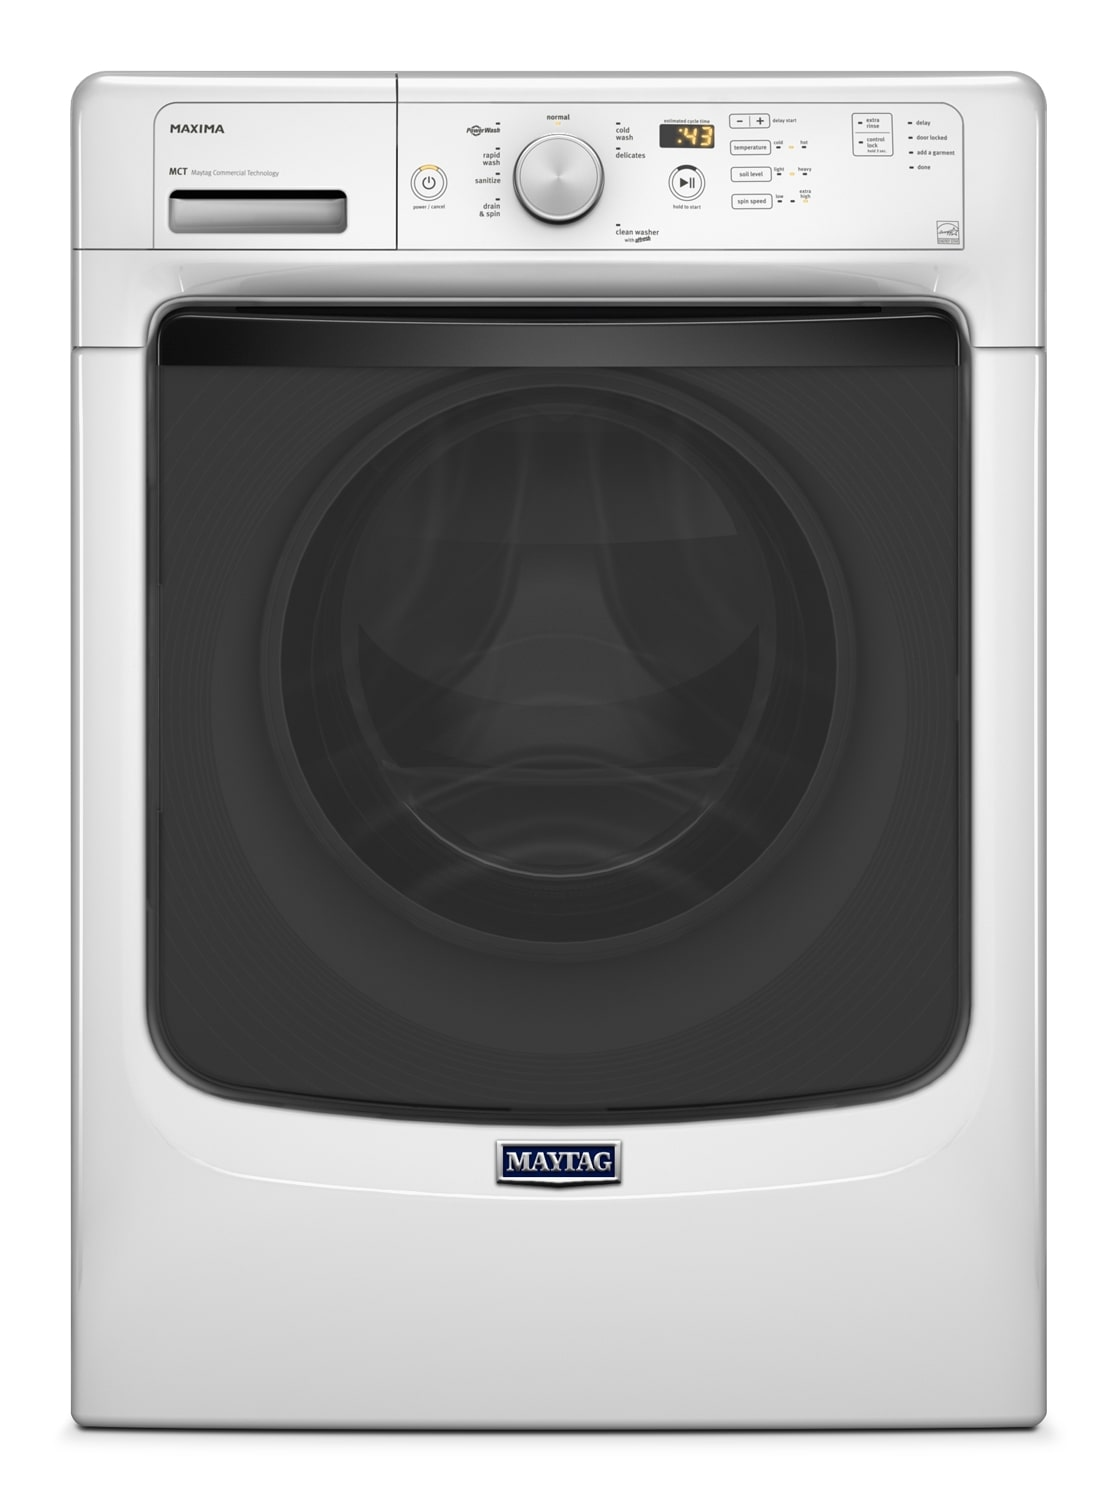 Maytag White Front-Load Washer (4.8 Cu. Ft.) - MHW3100DW